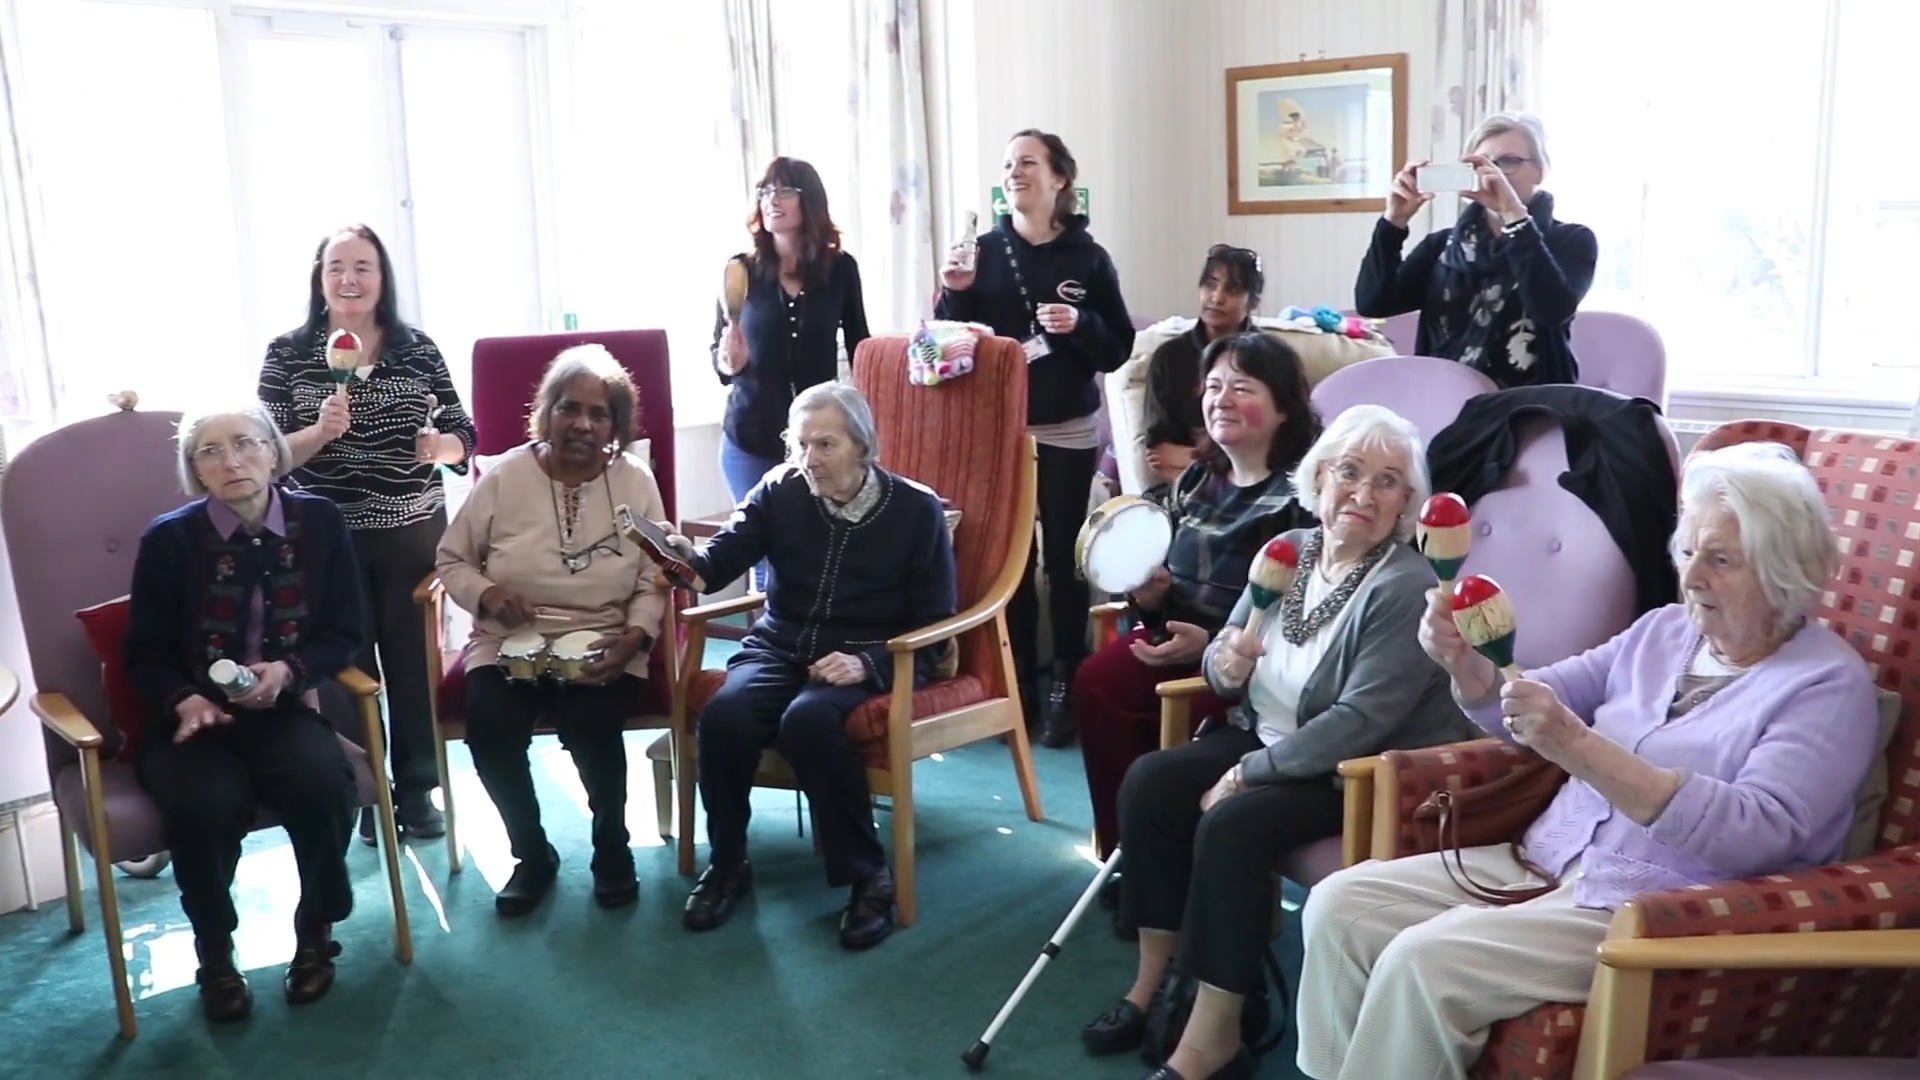 Brighton Hill School Basingstoke Steel Drum Band Grants Dementia Sufferer's Last Wish at Chertsey's Orchard Dementia Centre